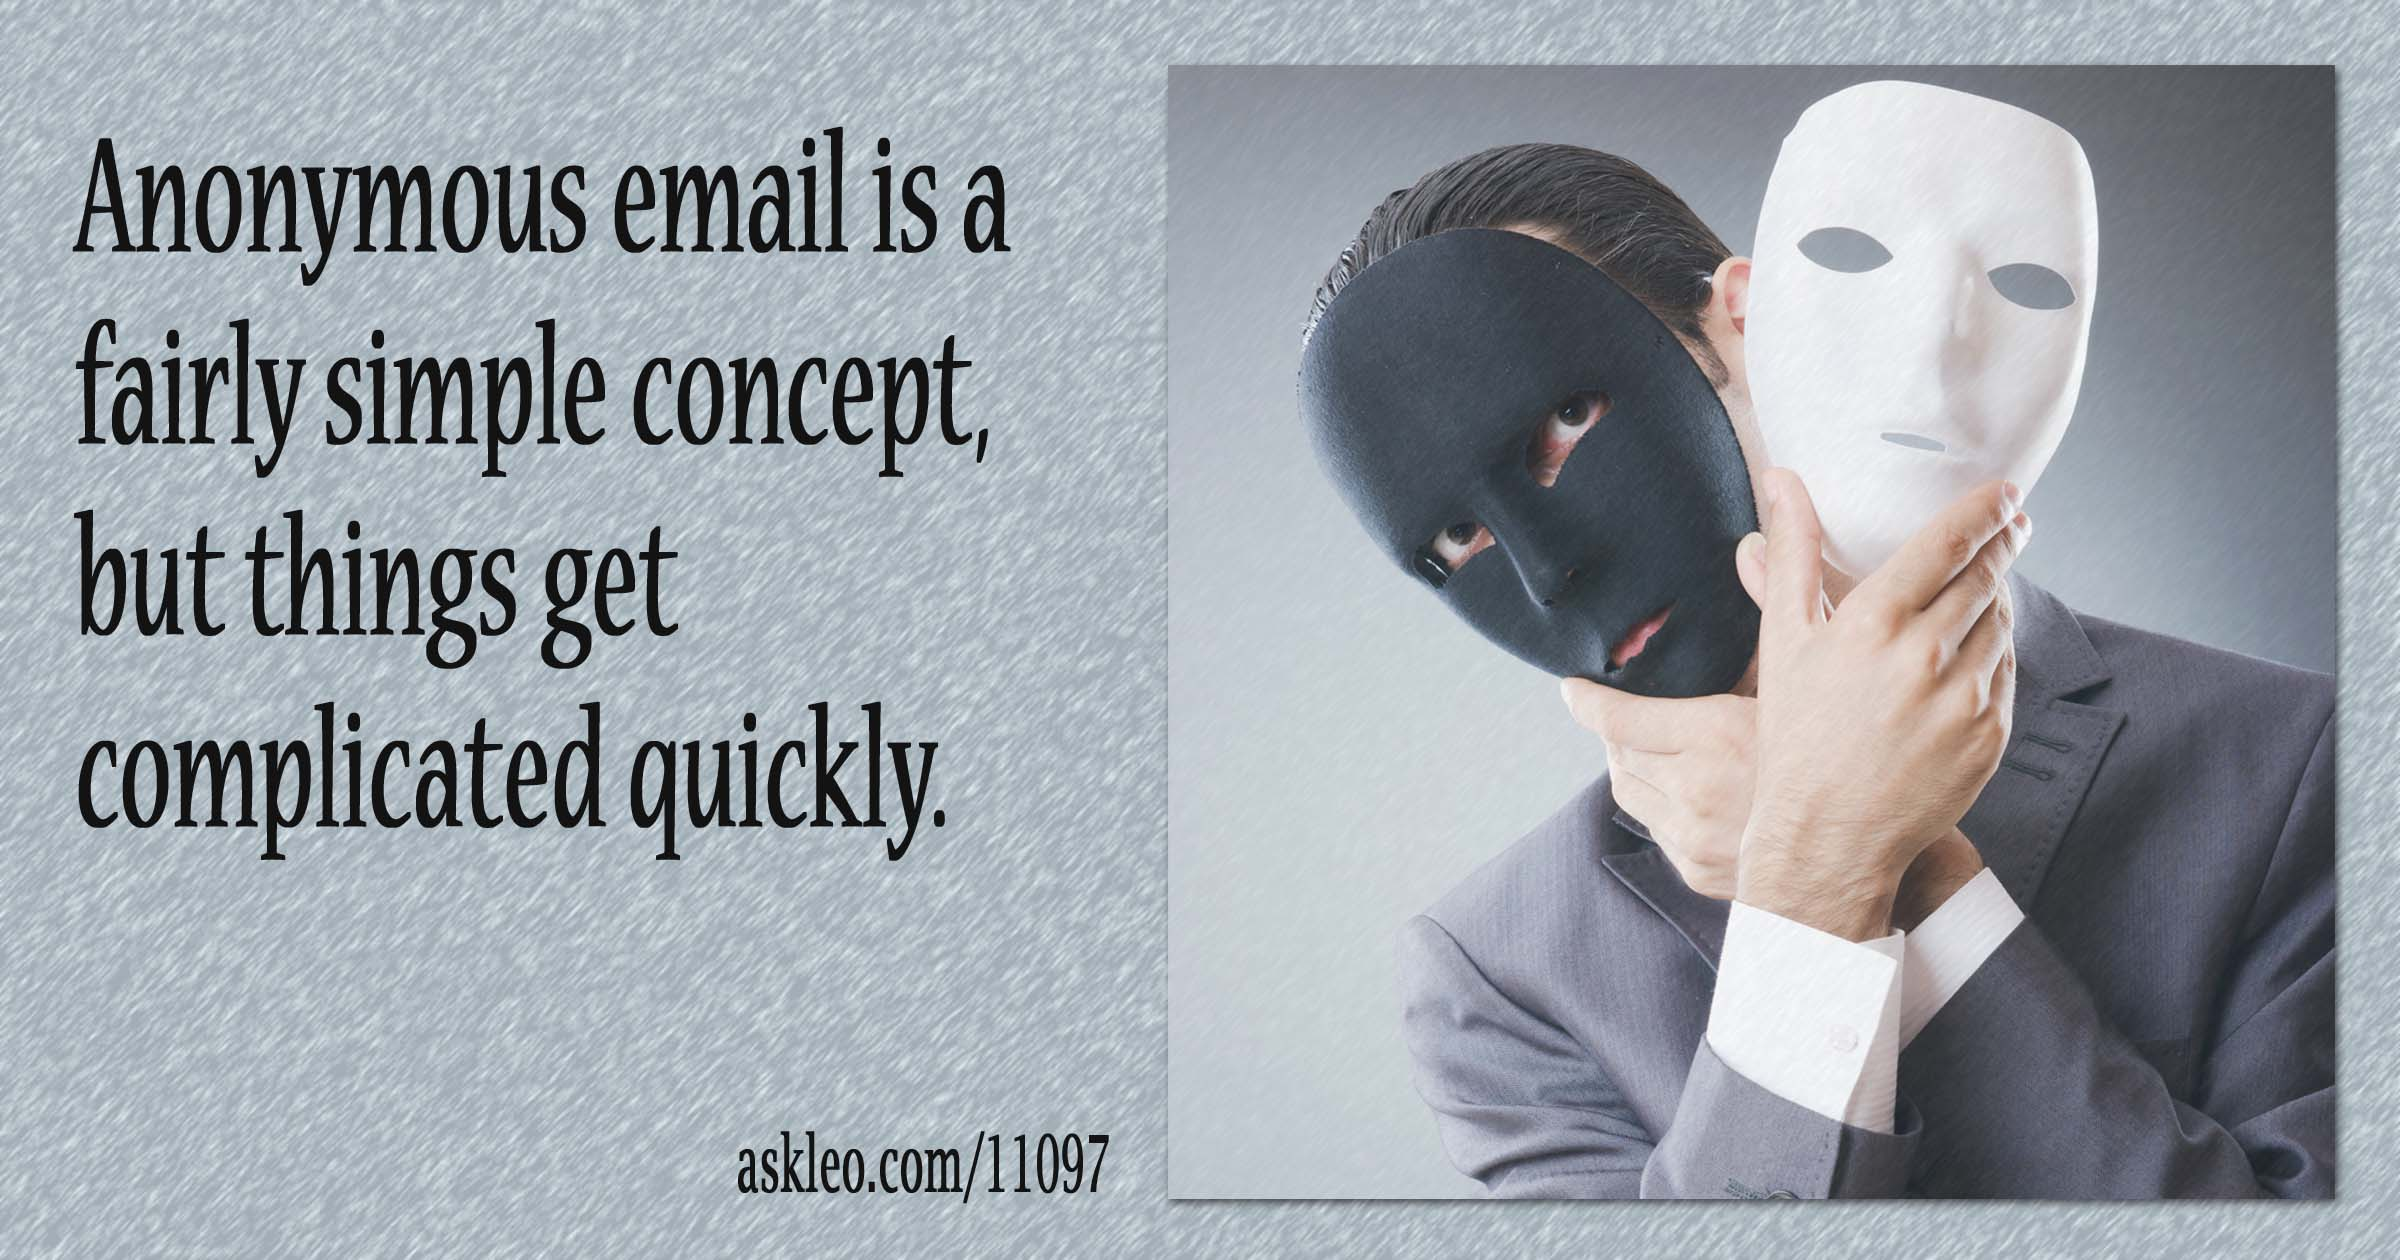 How Can I Send Anonymous Email? - Ask Leo!